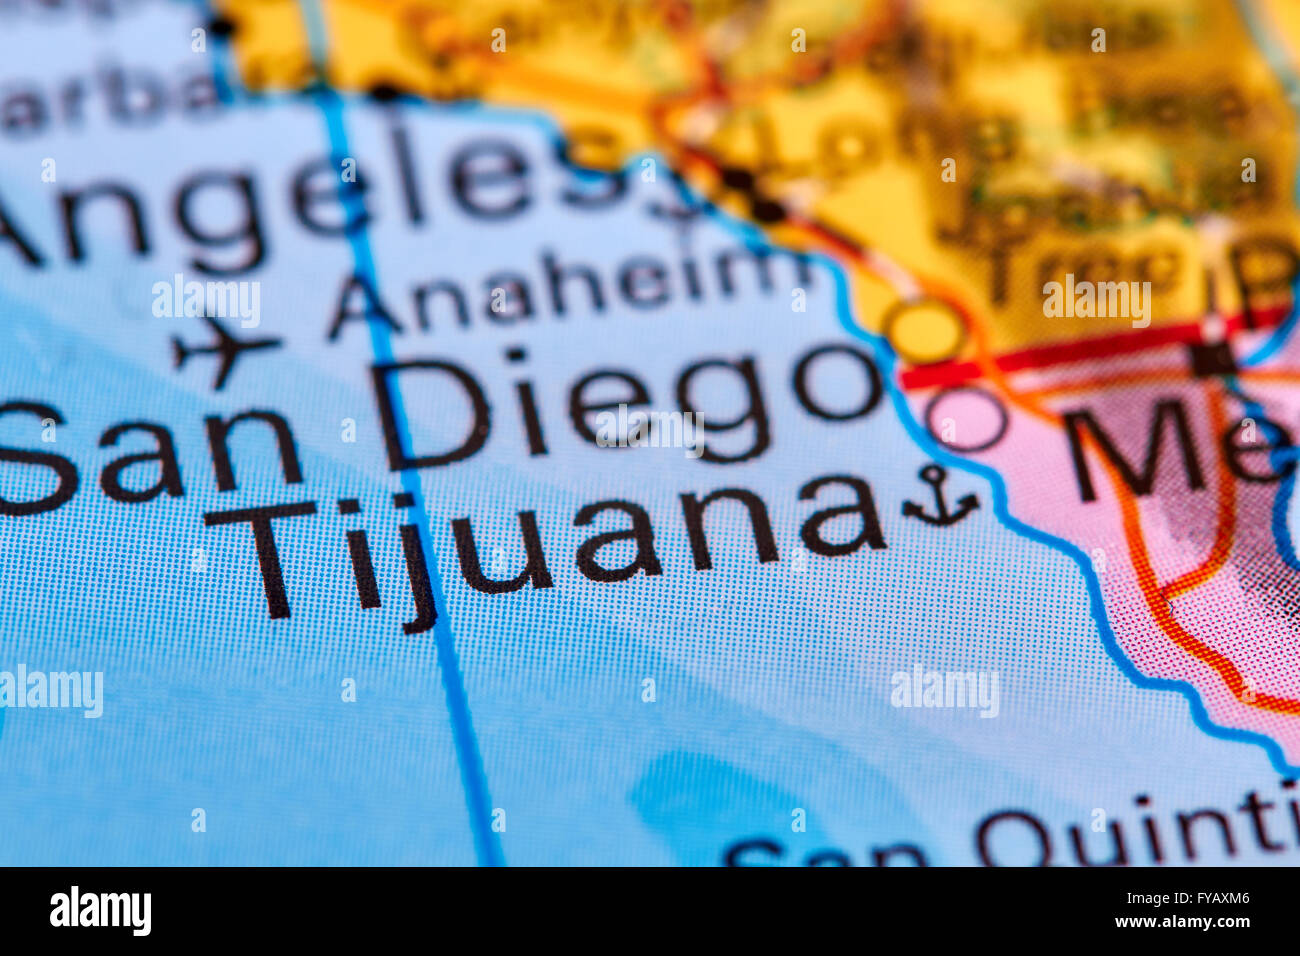 Usa Border Map Mexico Stock Photos & Usa Border Map Mexico Stock ...